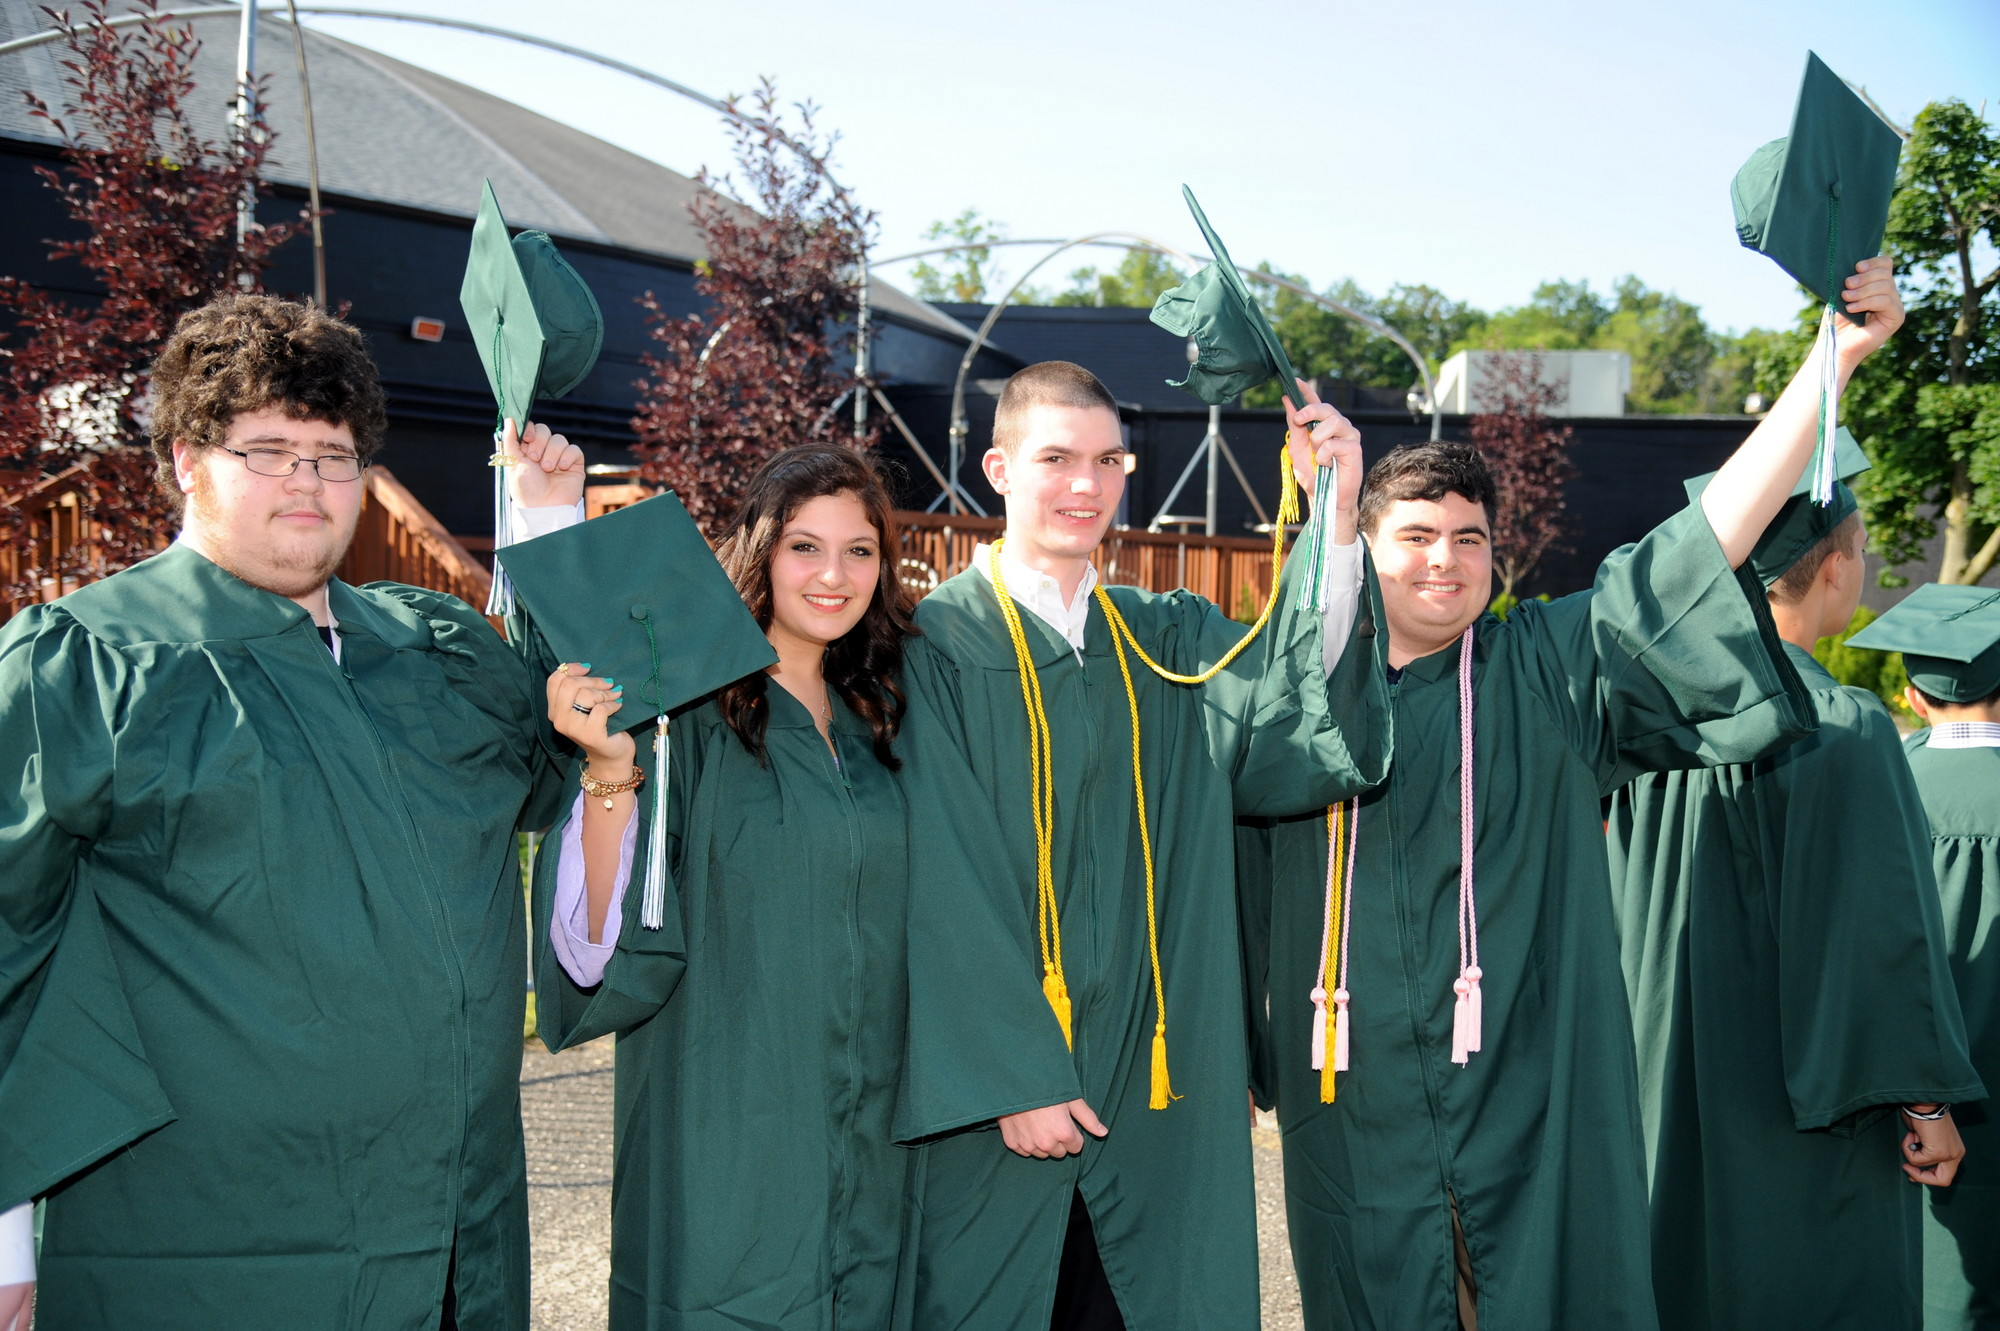 Kennedy students Kyle Freedman, Jhanna Firestone, Andrew Field and Alec Ferretti doffed their graduation caps Sunday outside the NYCB Theater in Westbury.